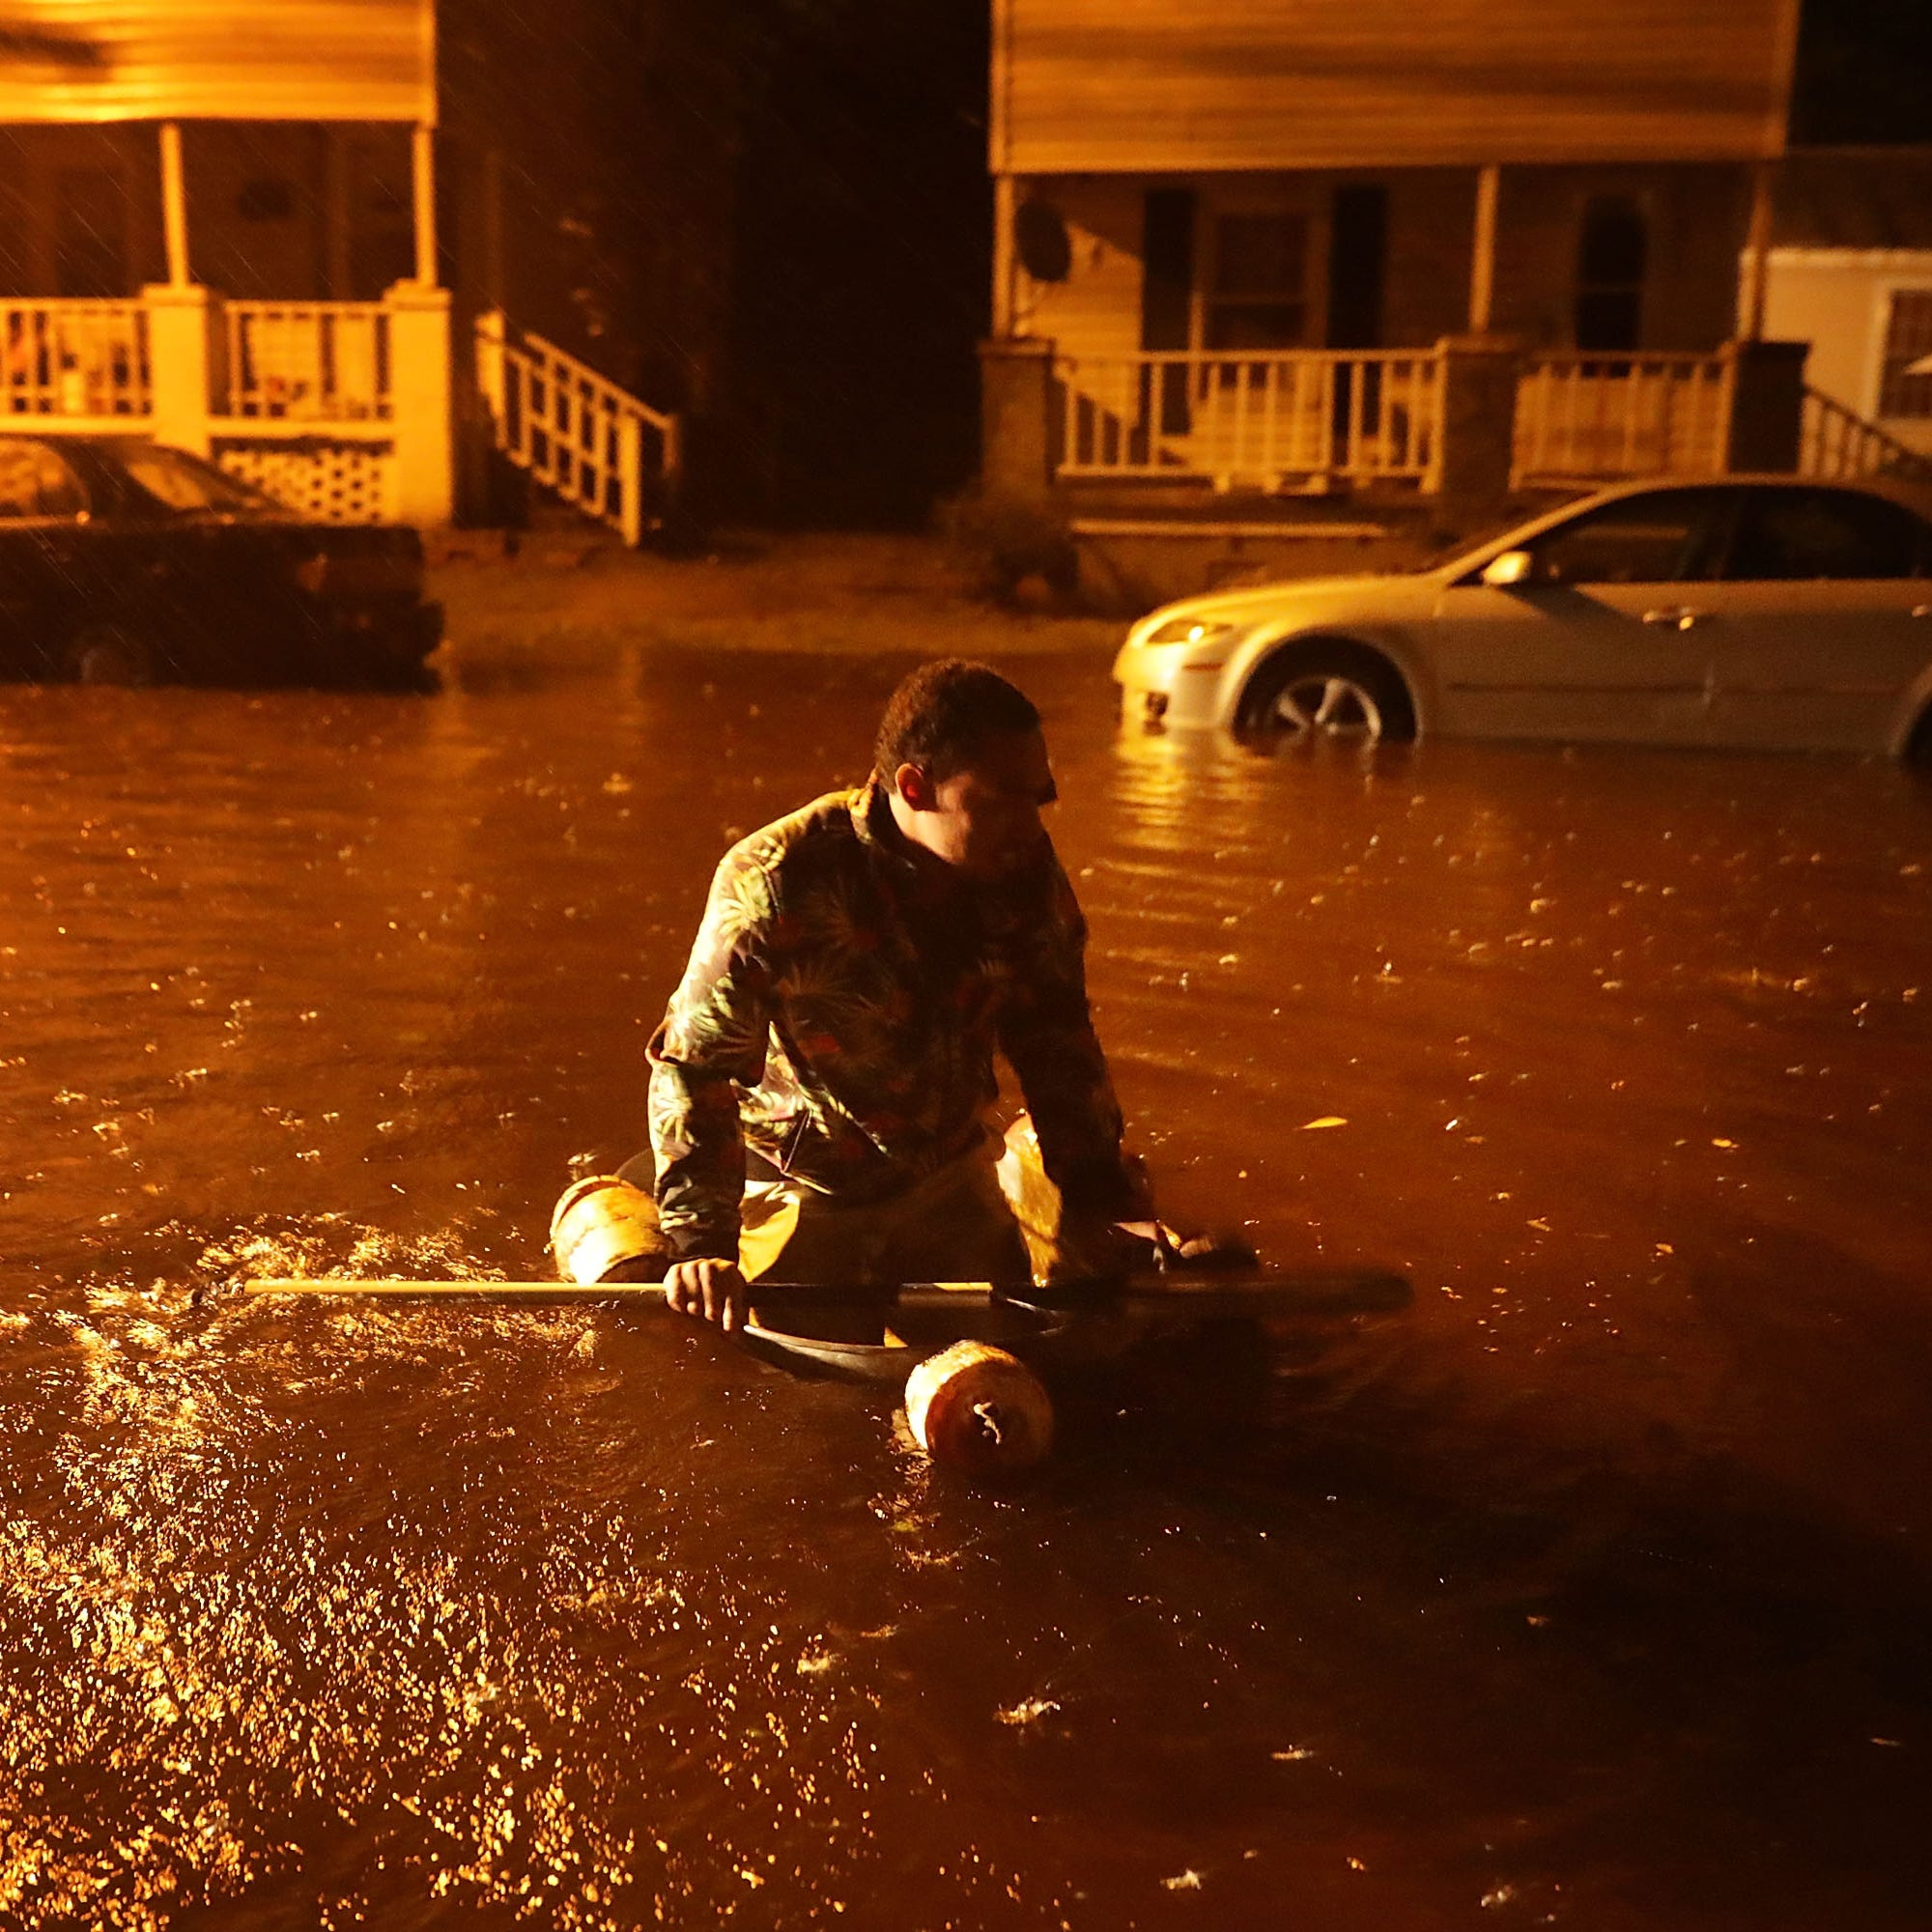 Hurricane Florence: Hundreds in New Bern need rescue from 'catastrophic storm surge'